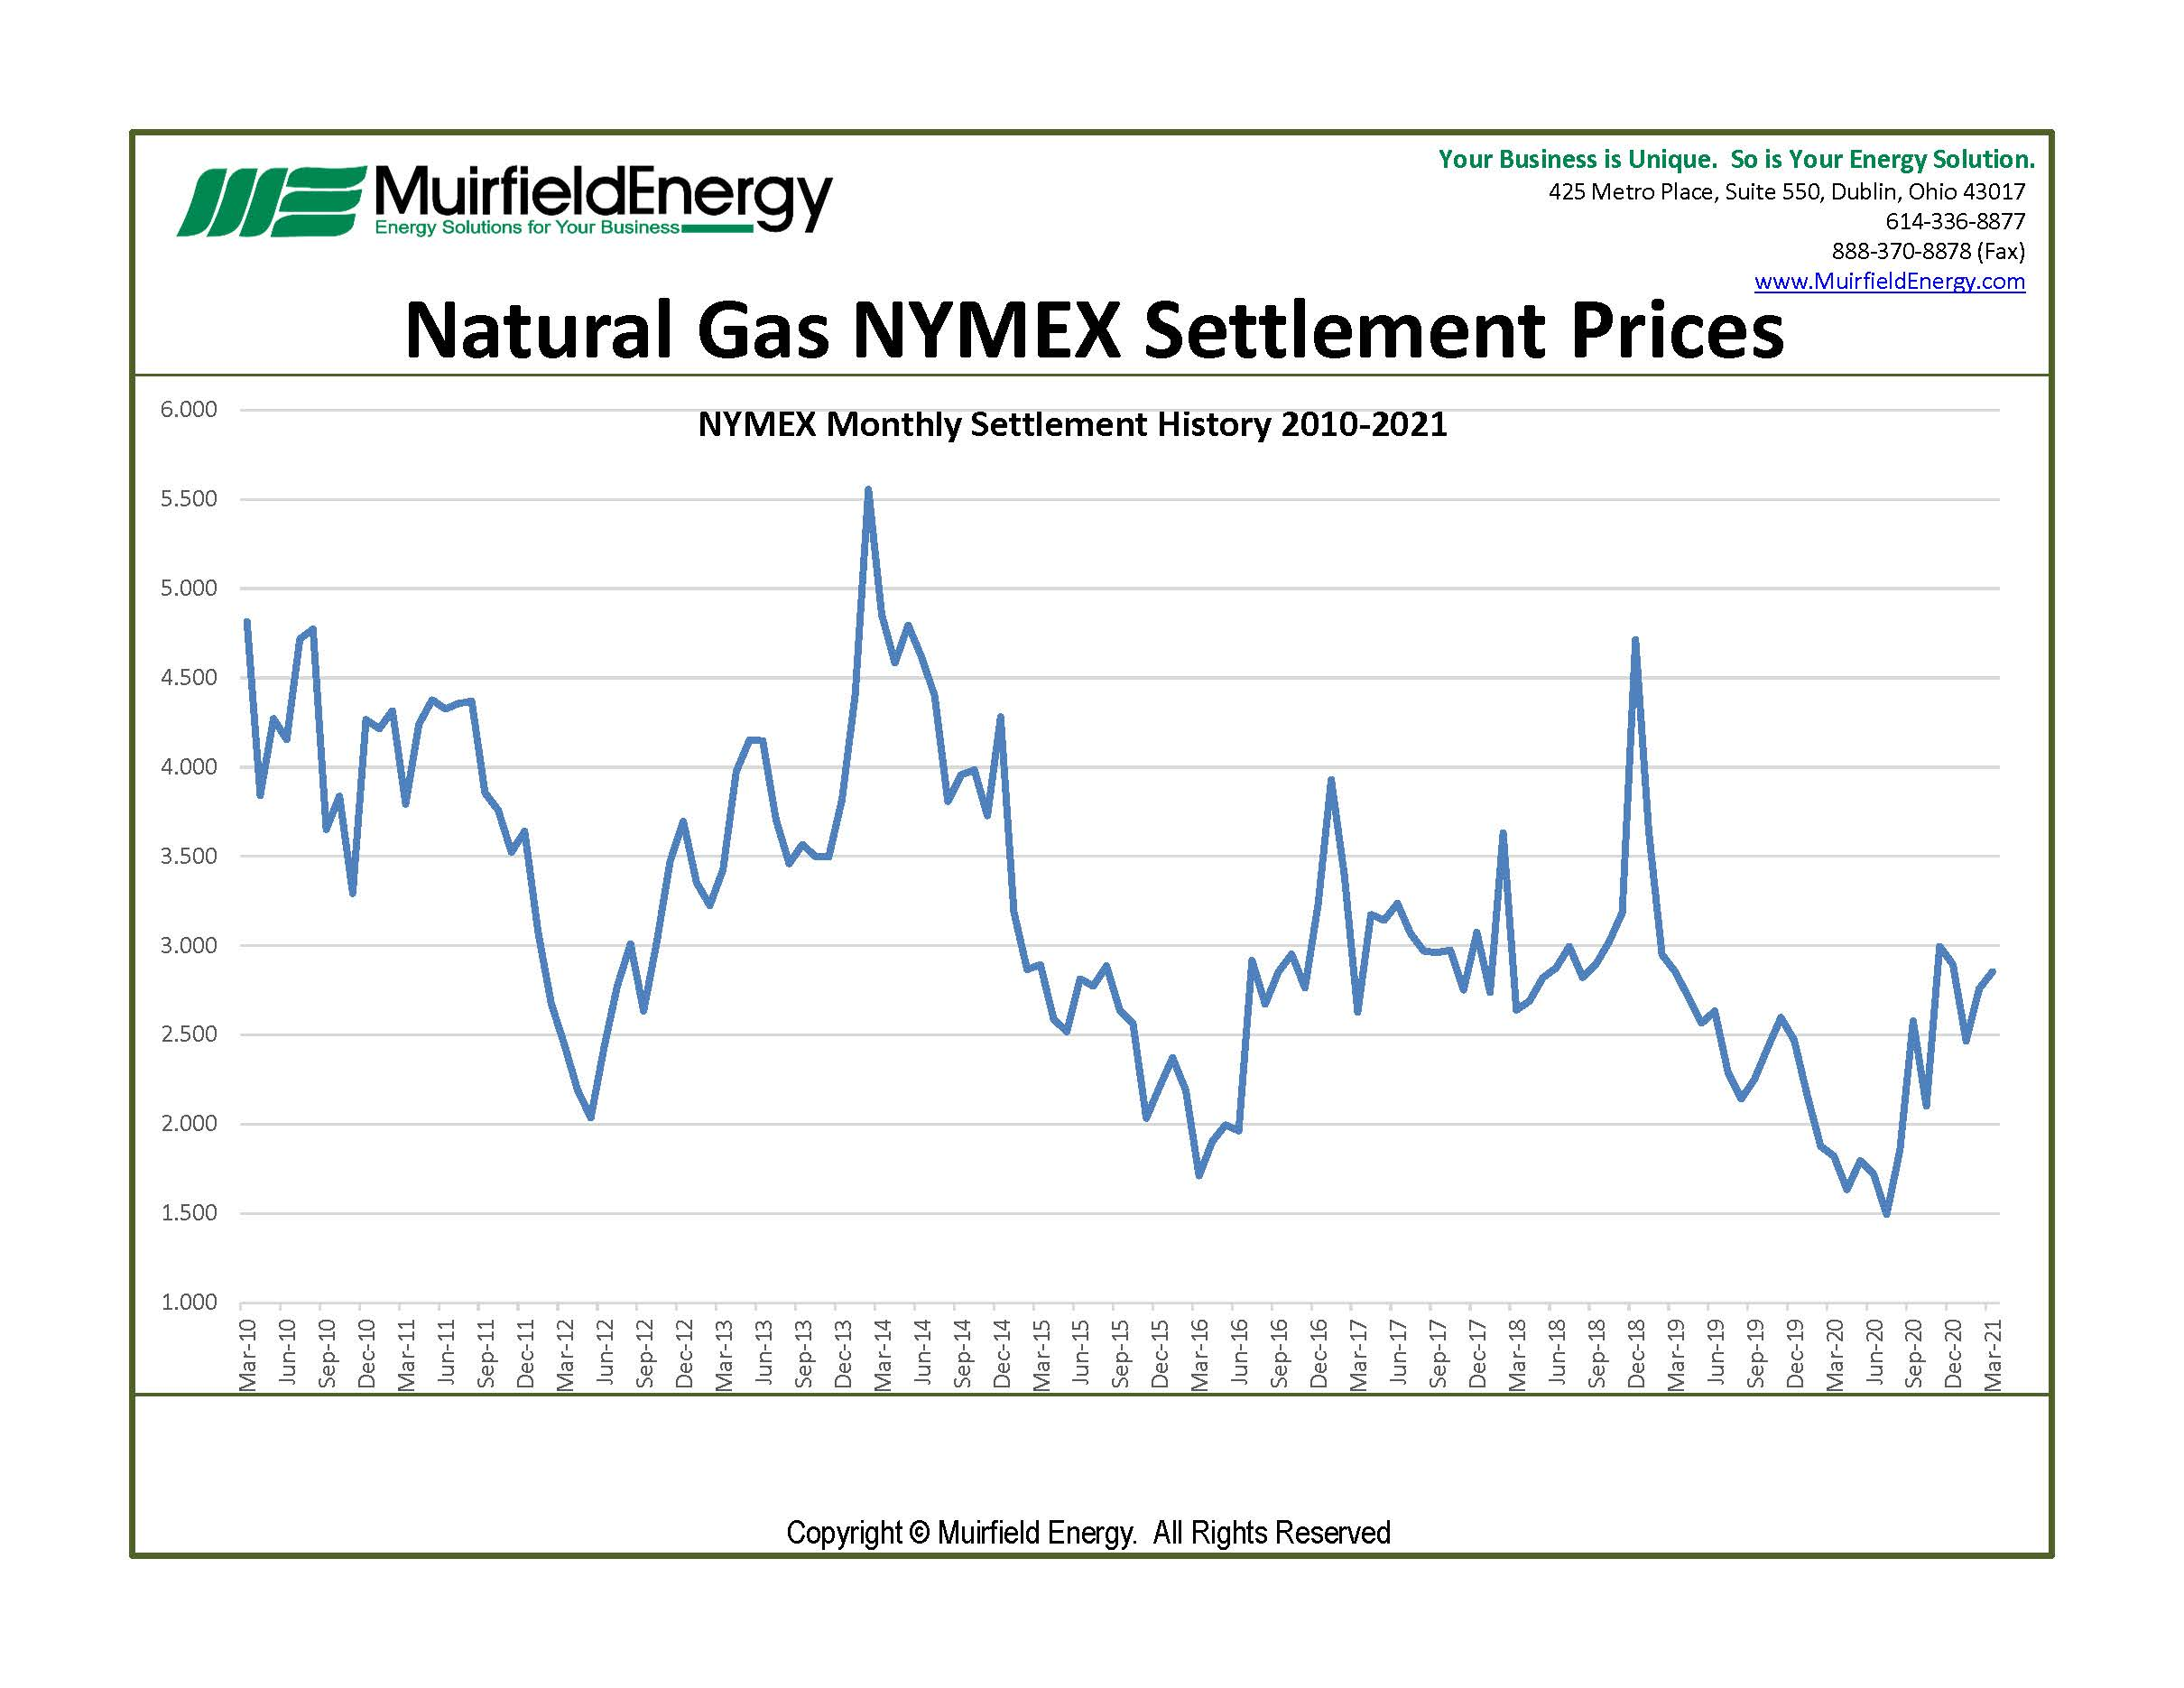 March 2021 NYMEX natural gas contract settled at $2.854